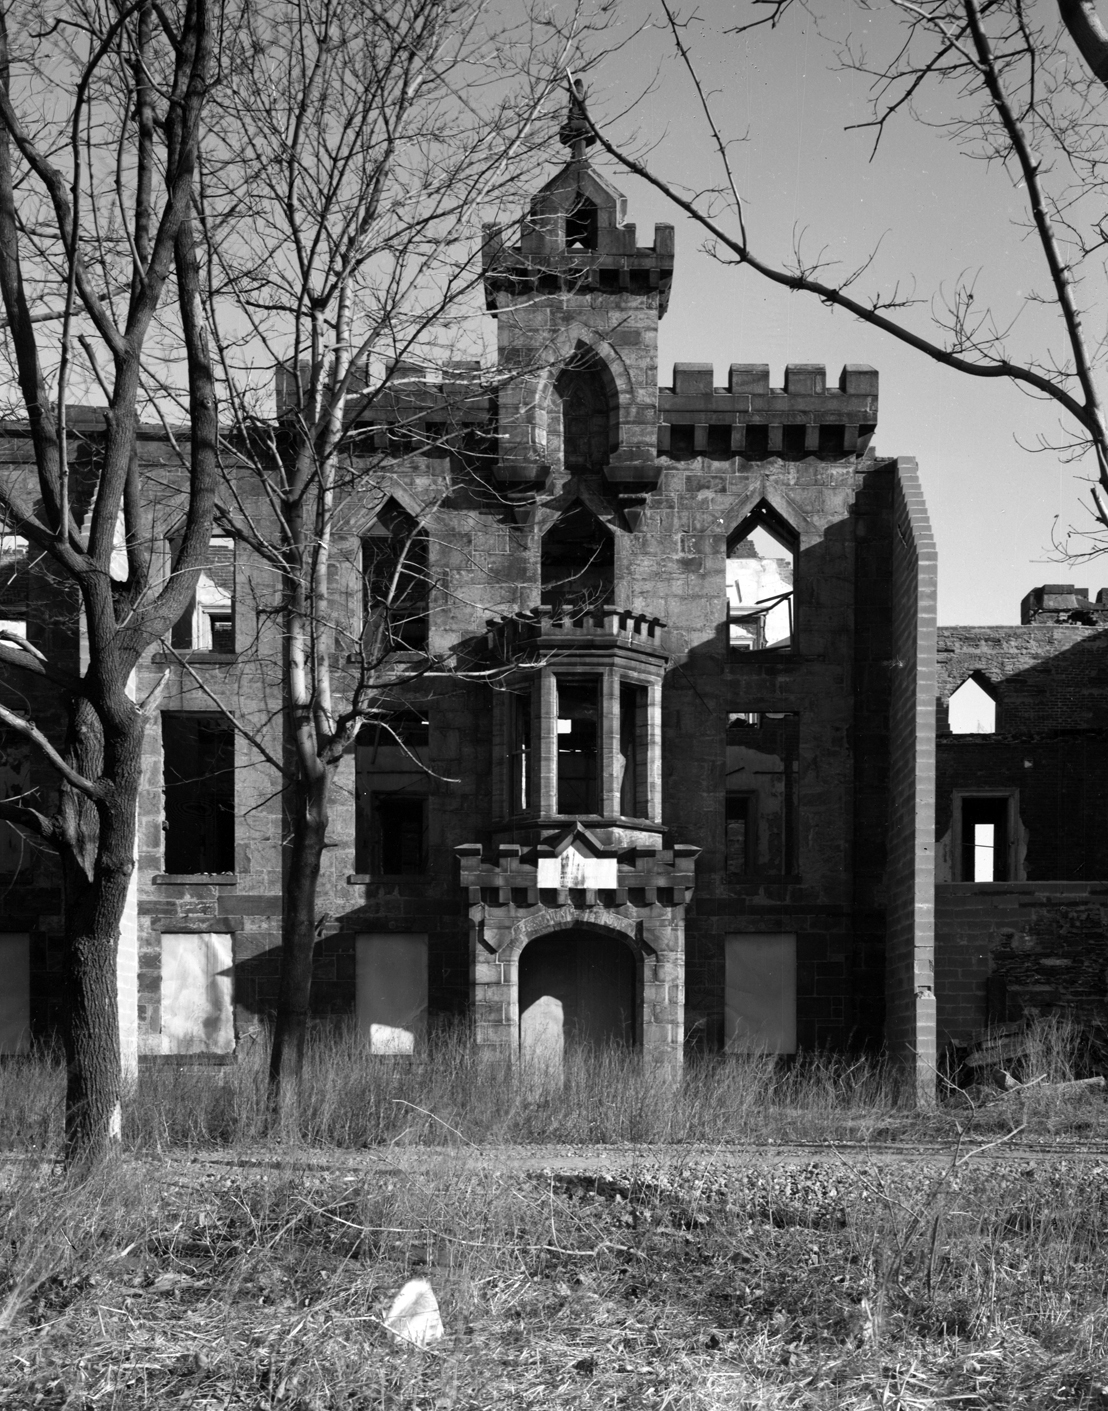 The main entrance porch of the Smallpox Hospital, New York City Landmarks Preservation Commission